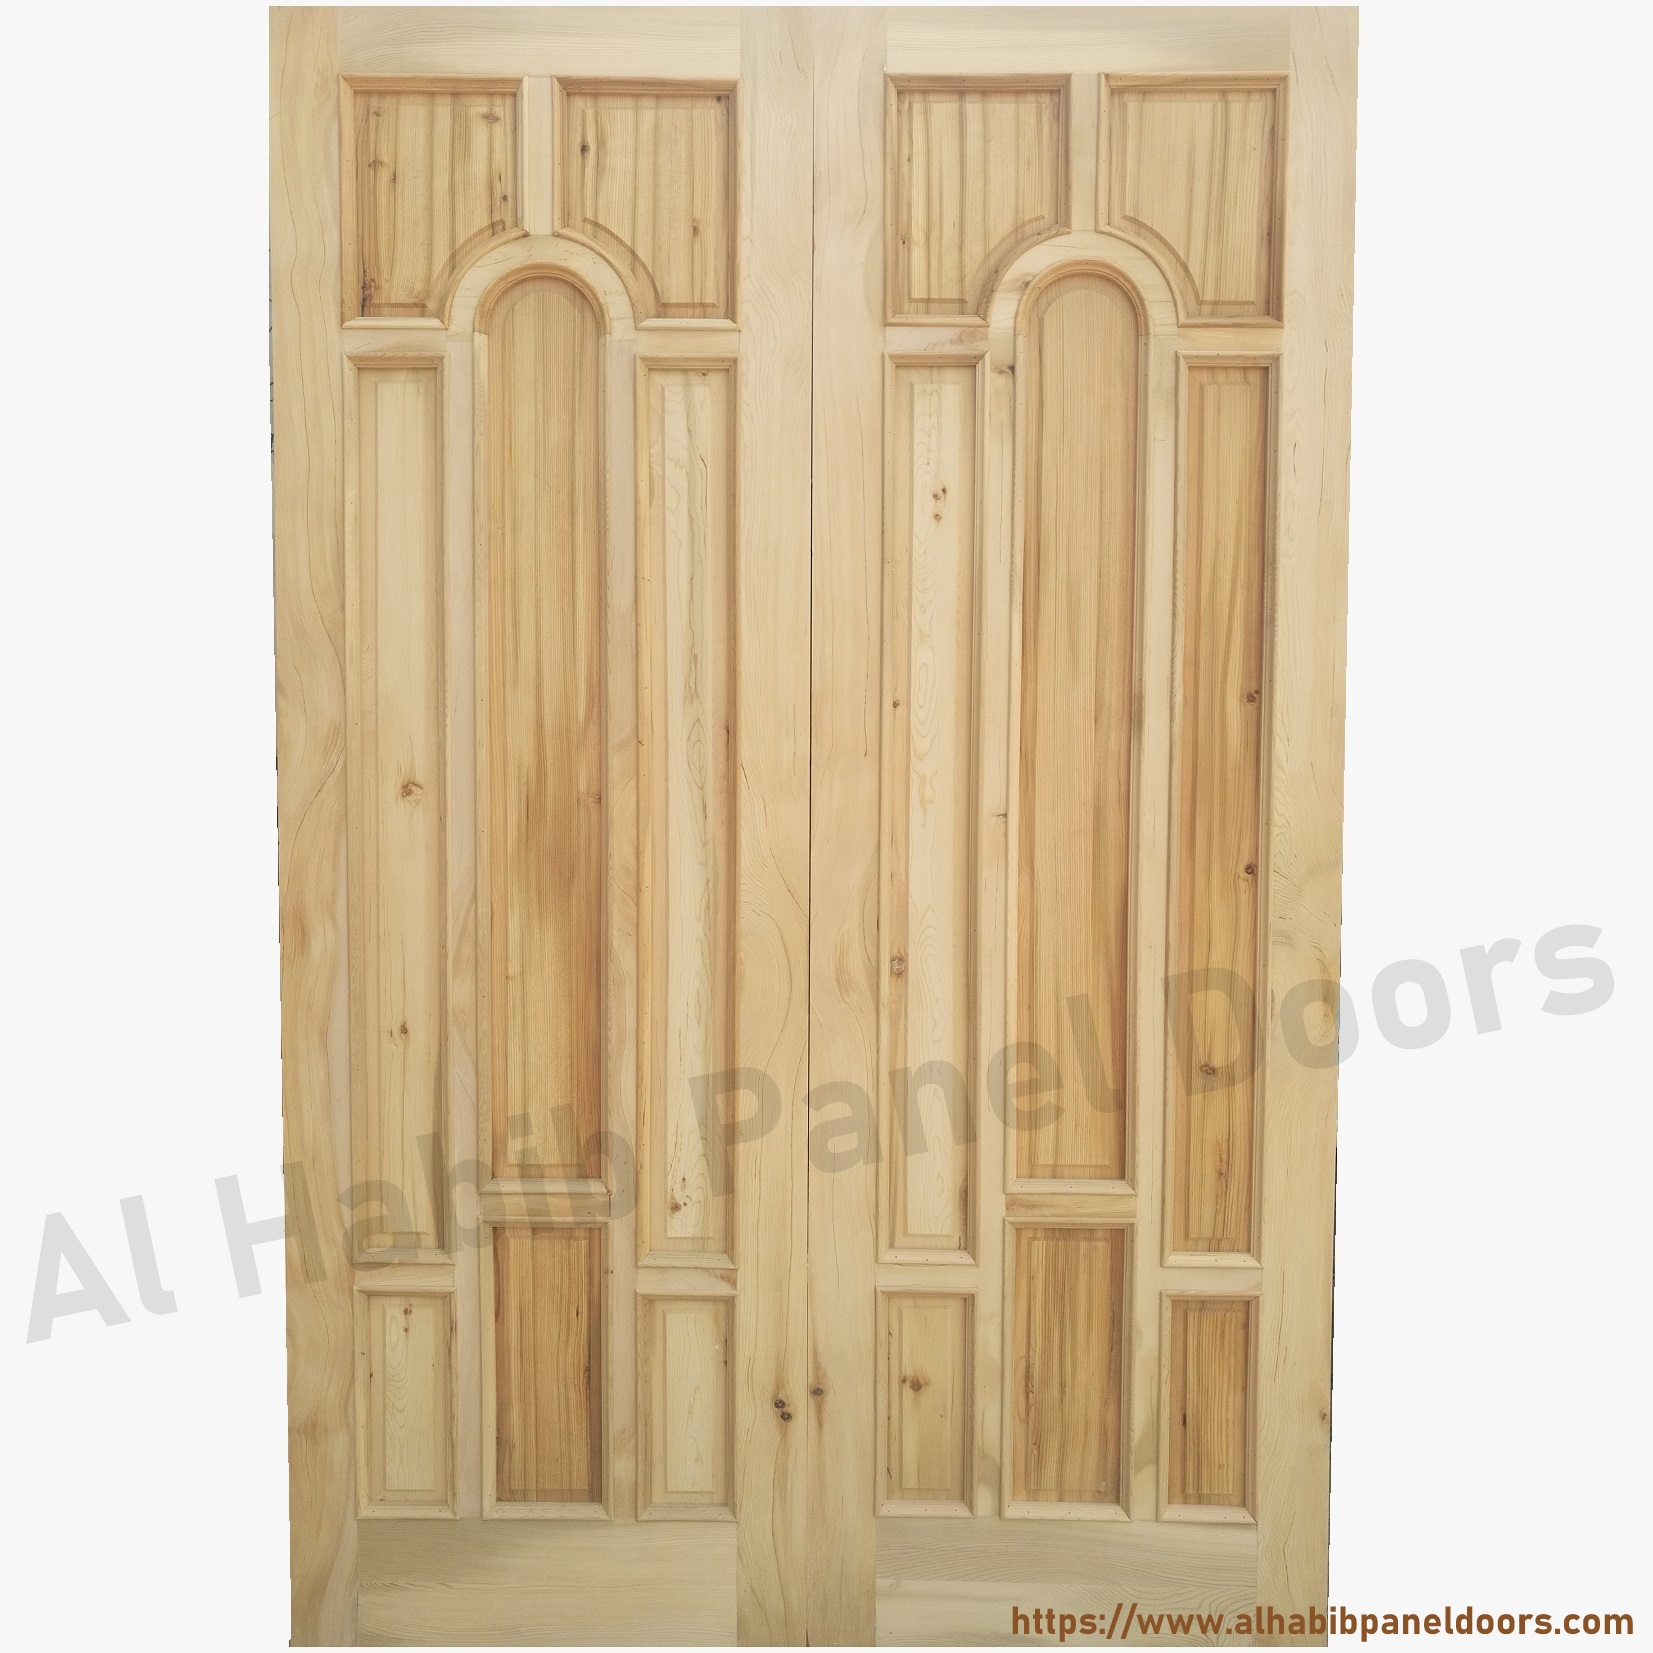 Main double door hpd329 main doors al habib panel doors for Main door design latest